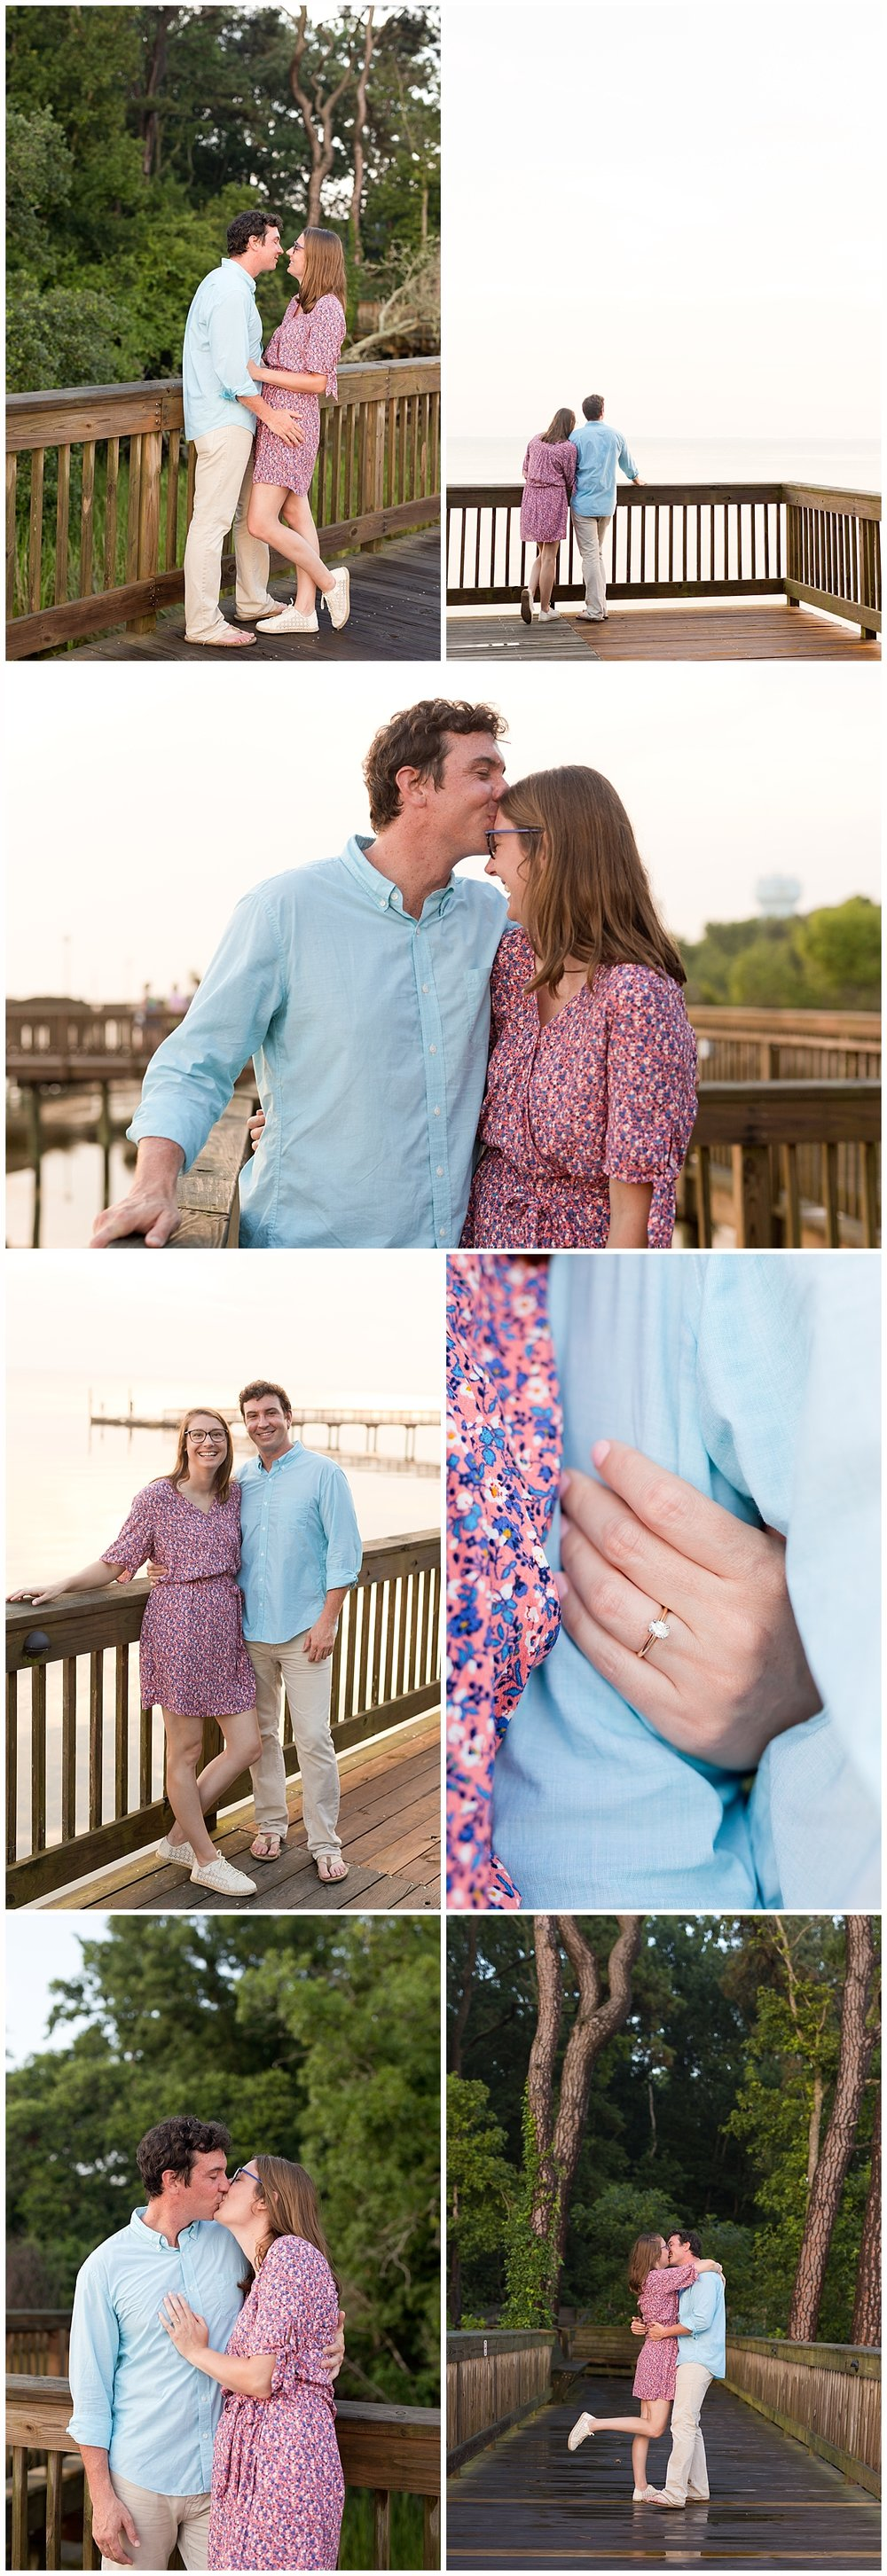 engagement pictures with boardwalk - wedding photographer in Ocean Springs, MS